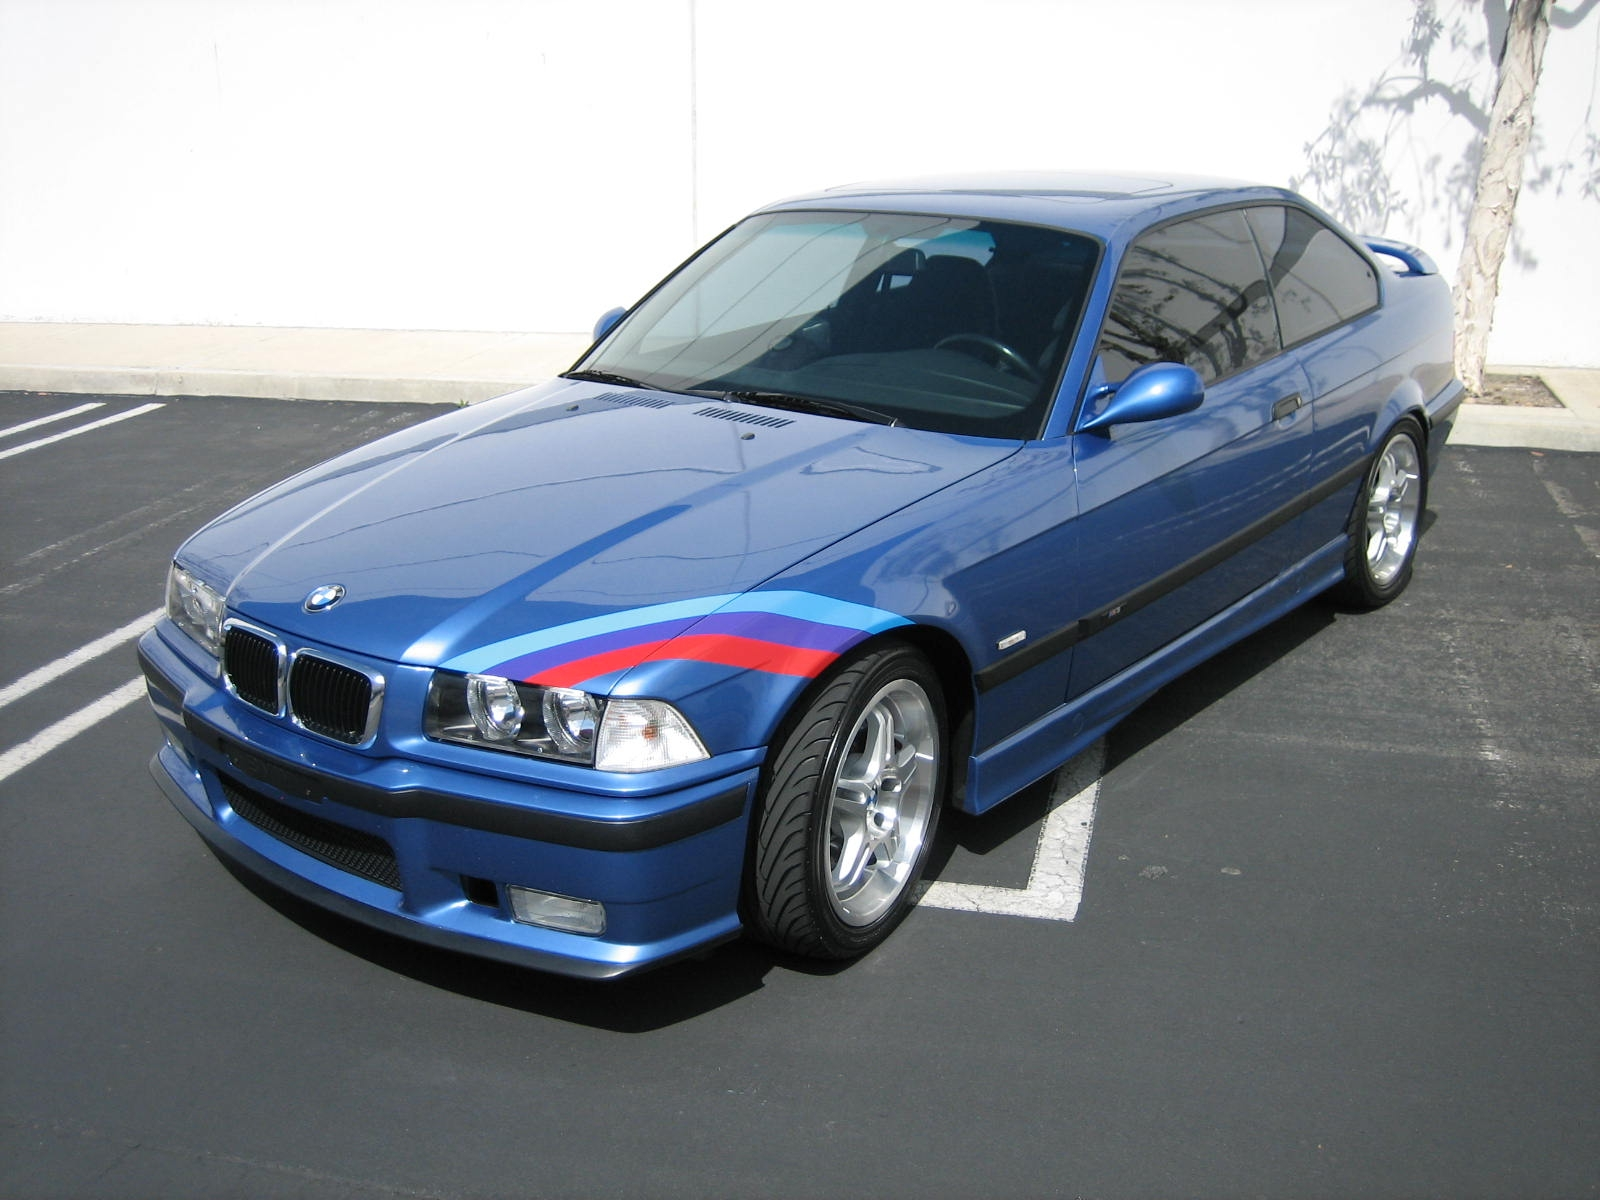 stage2turbo6 1997 bmw m3 specs photos modification info. Black Bedroom Furniture Sets. Home Design Ideas